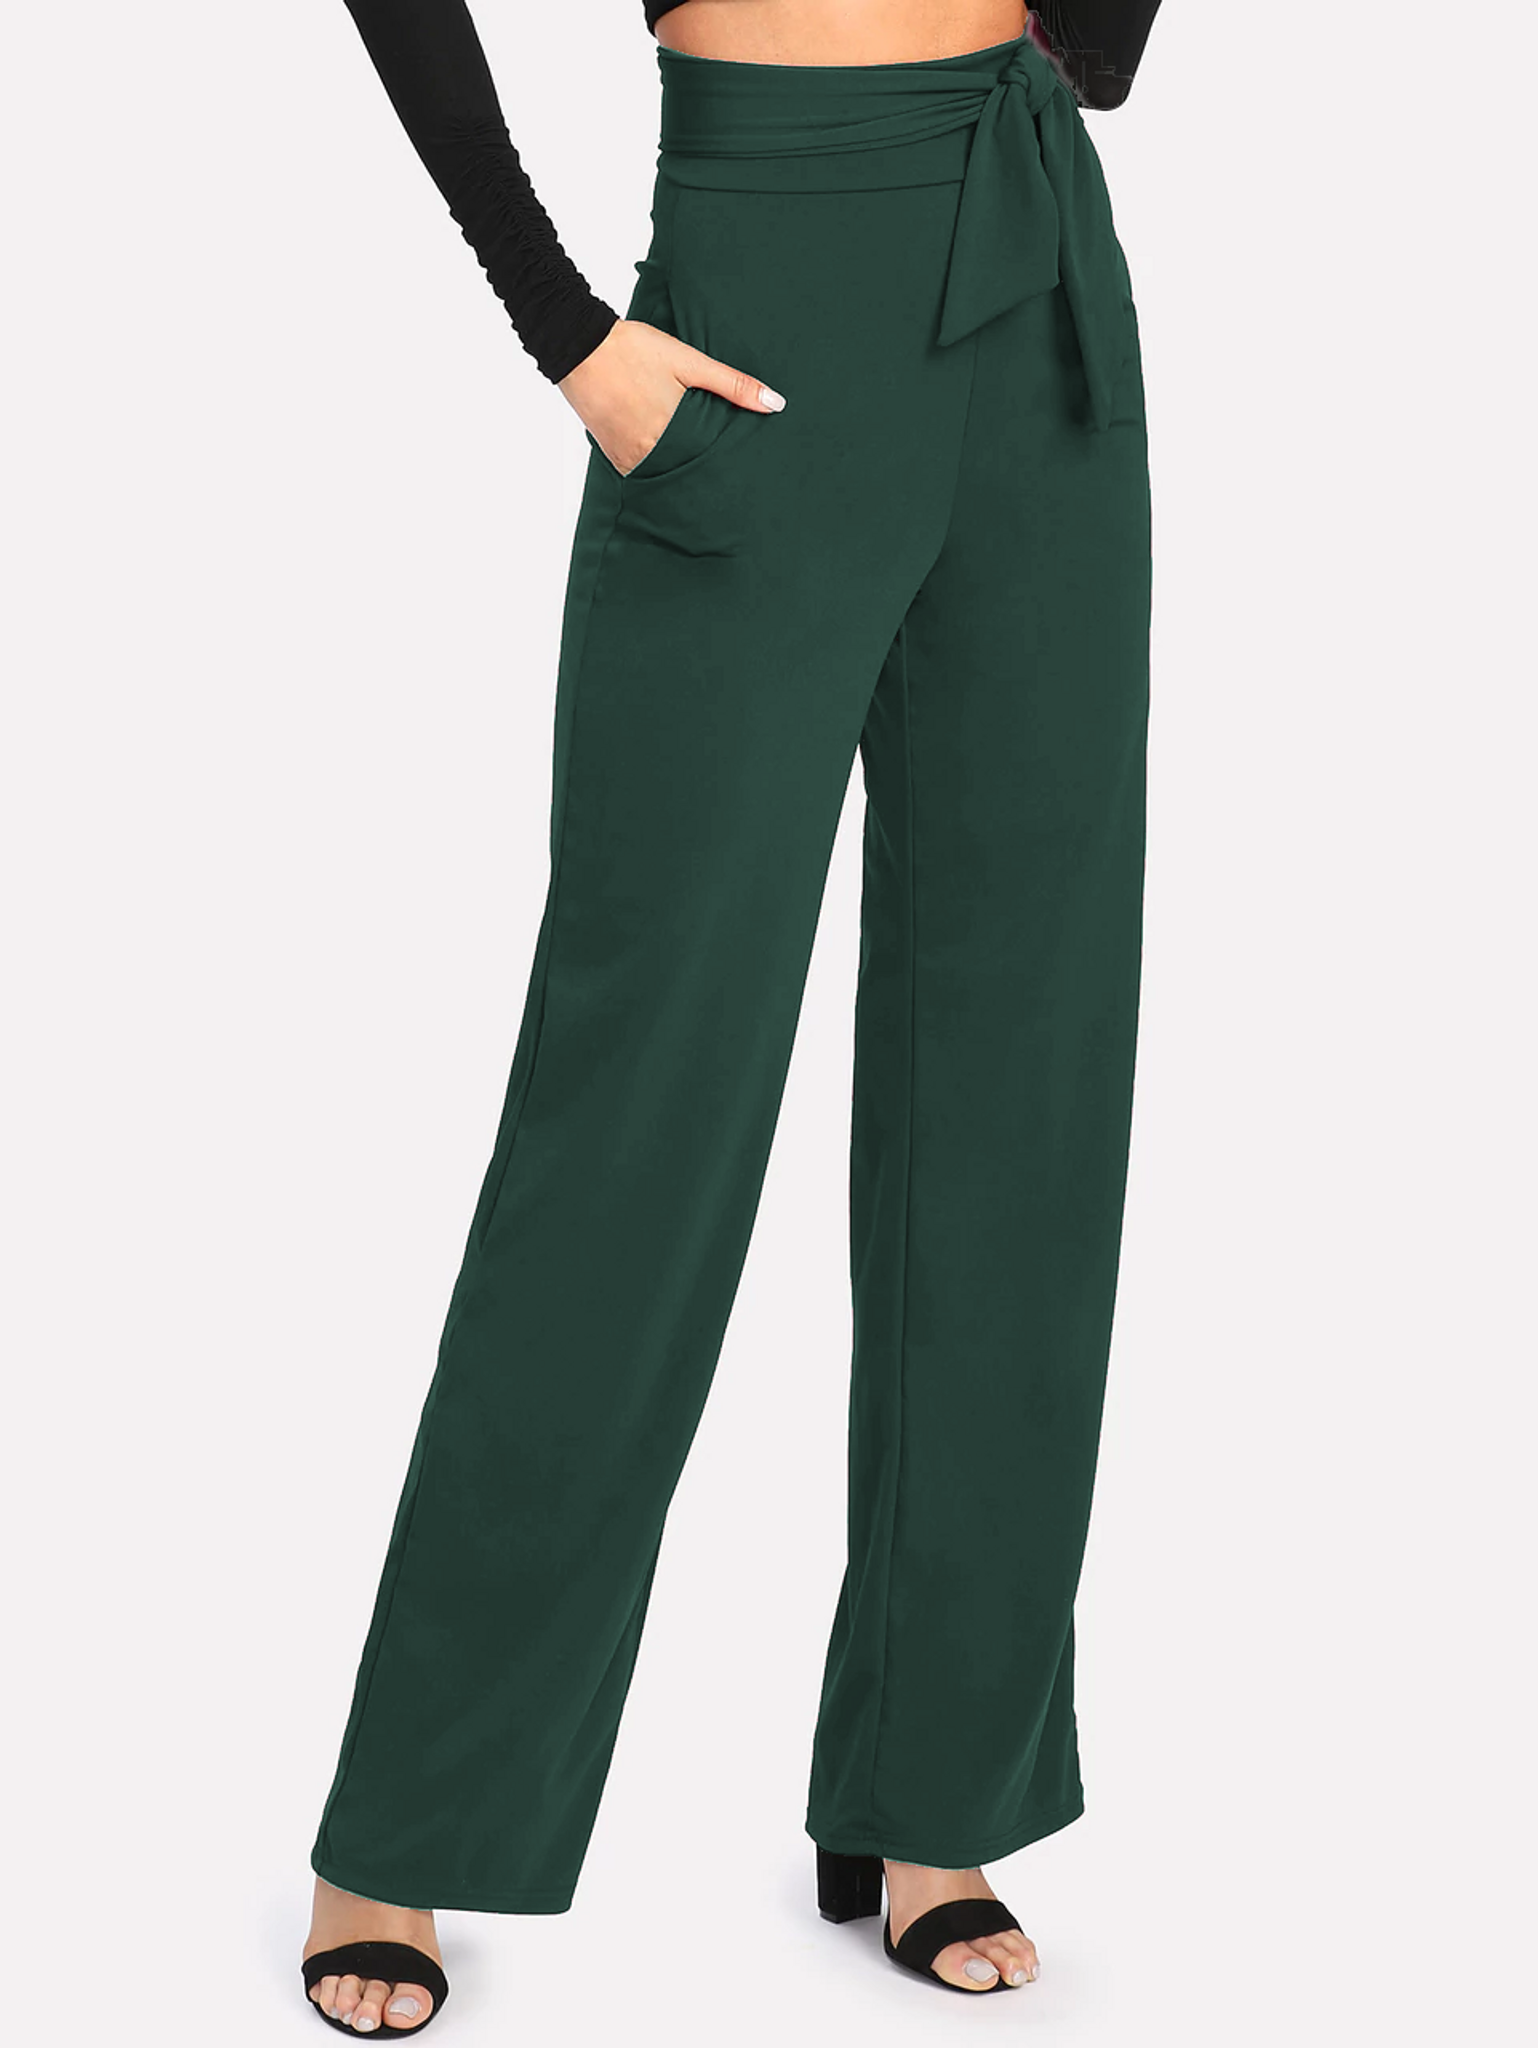 Fifth Avenue Women's NESS Tie Waist Pants - Green